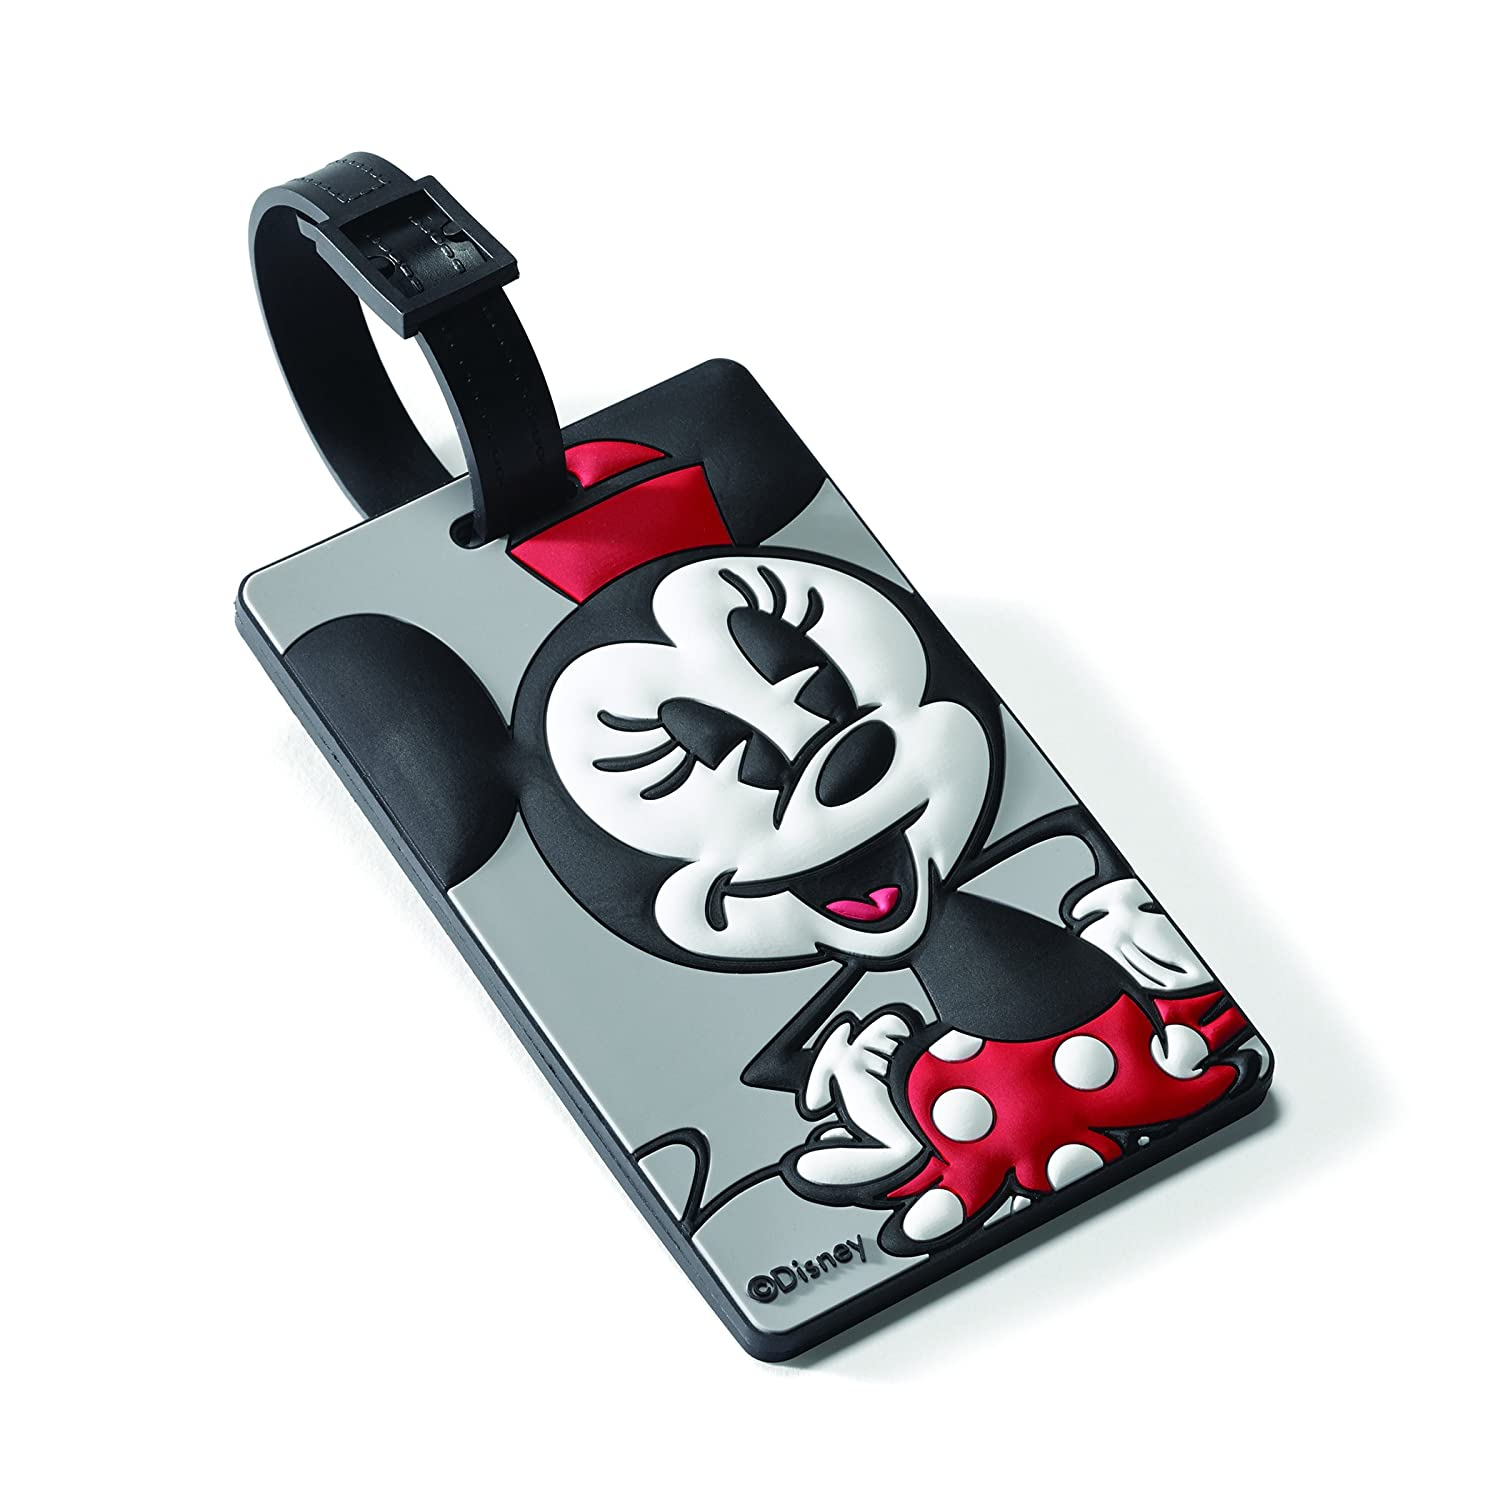 American Tourister Minnie Mouse ID Tag Travel Accessory, Minnie Mouse 74445-4451